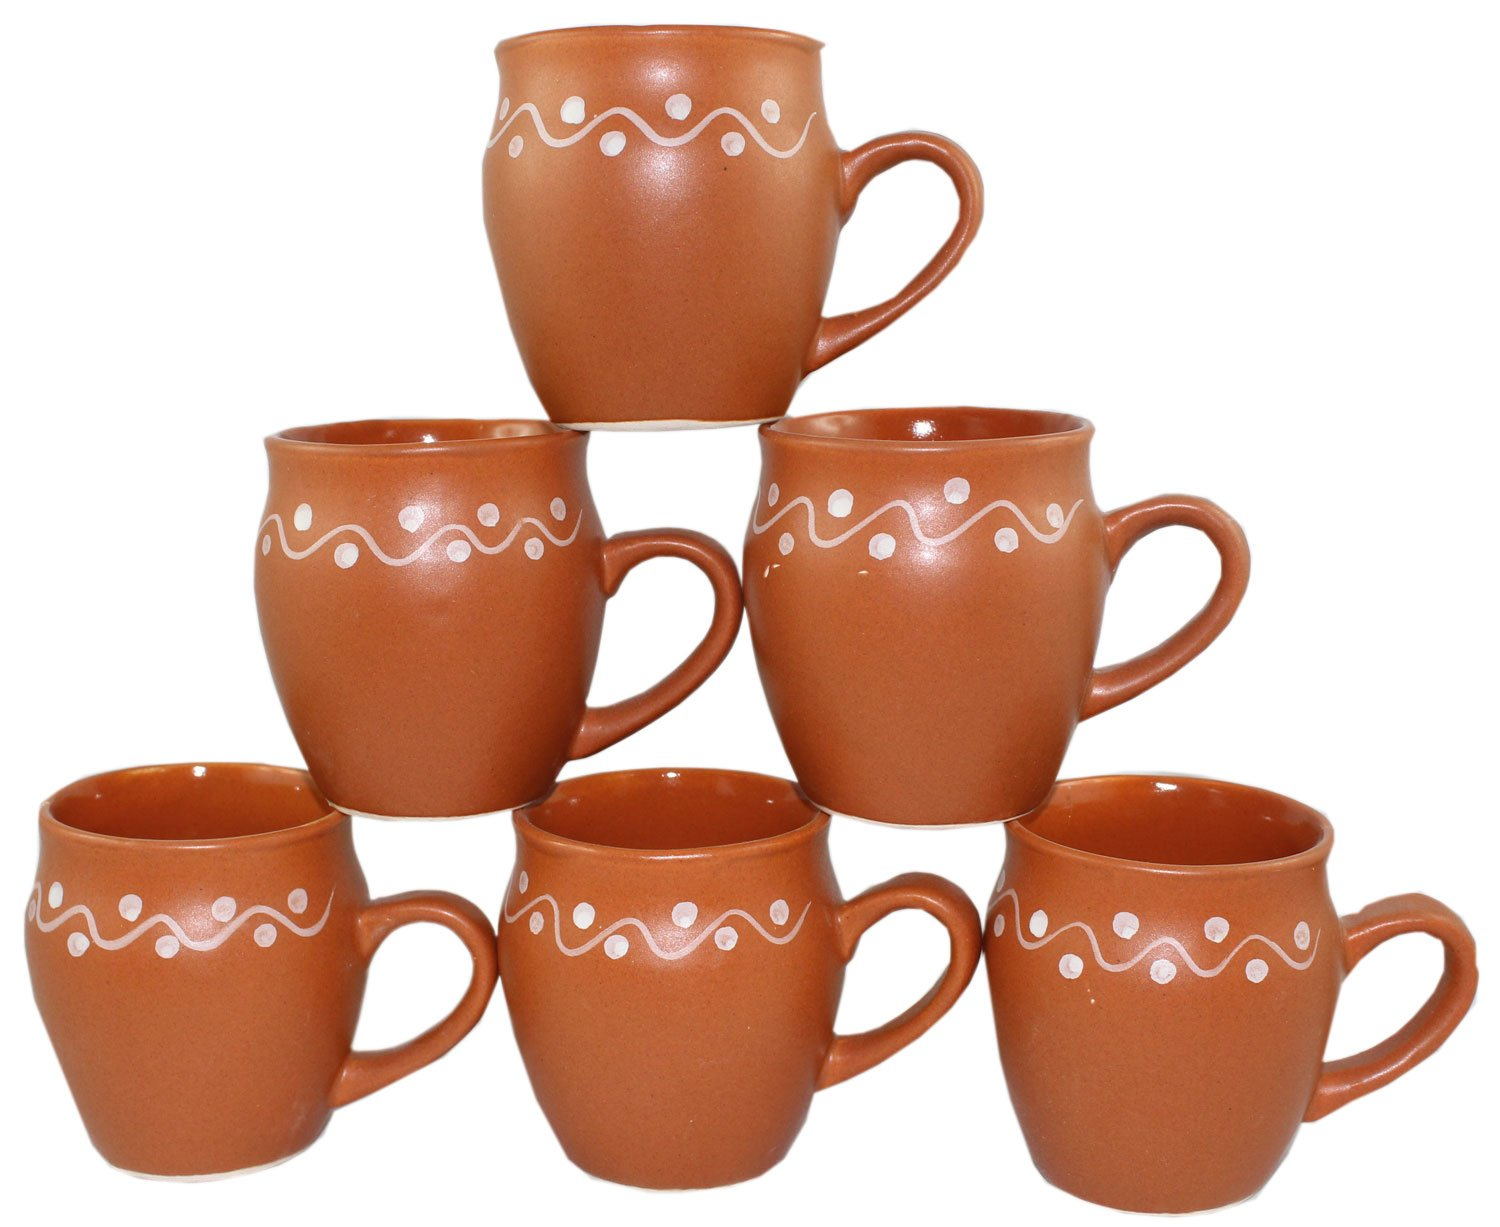 Odishabazaar Kulhar Kulhad Cups Traditional Indian Chai Tea Cup Set of 6 Tea Mug Coffee Mug